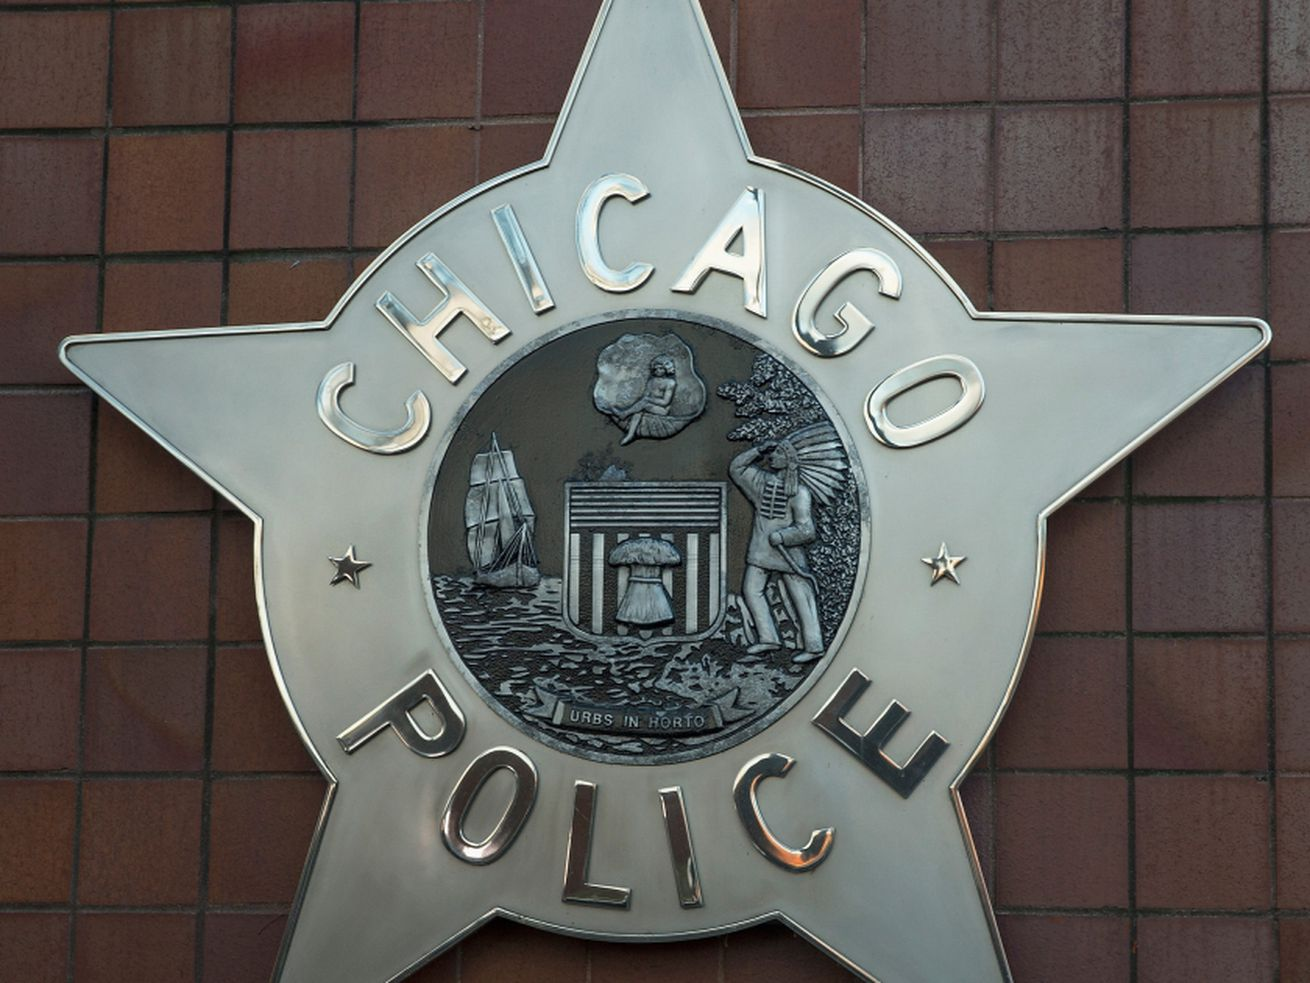 Armed robberies reported in Bronzeville (2)